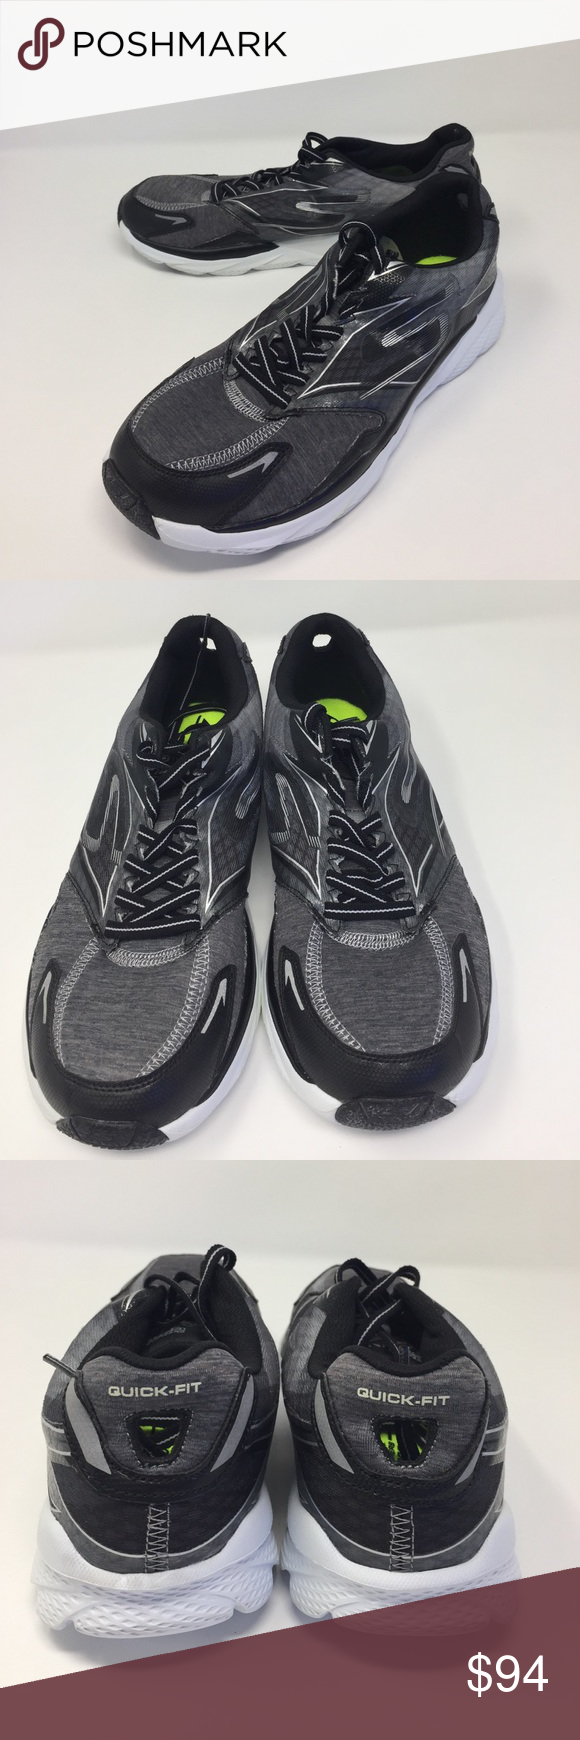 2f05c570c91f Men s Skechers GoRun Ride 4-Excess size 8.5. a-1 New without box no tags in  good condition look like it has been tried on once gray silver color  Skechers ...